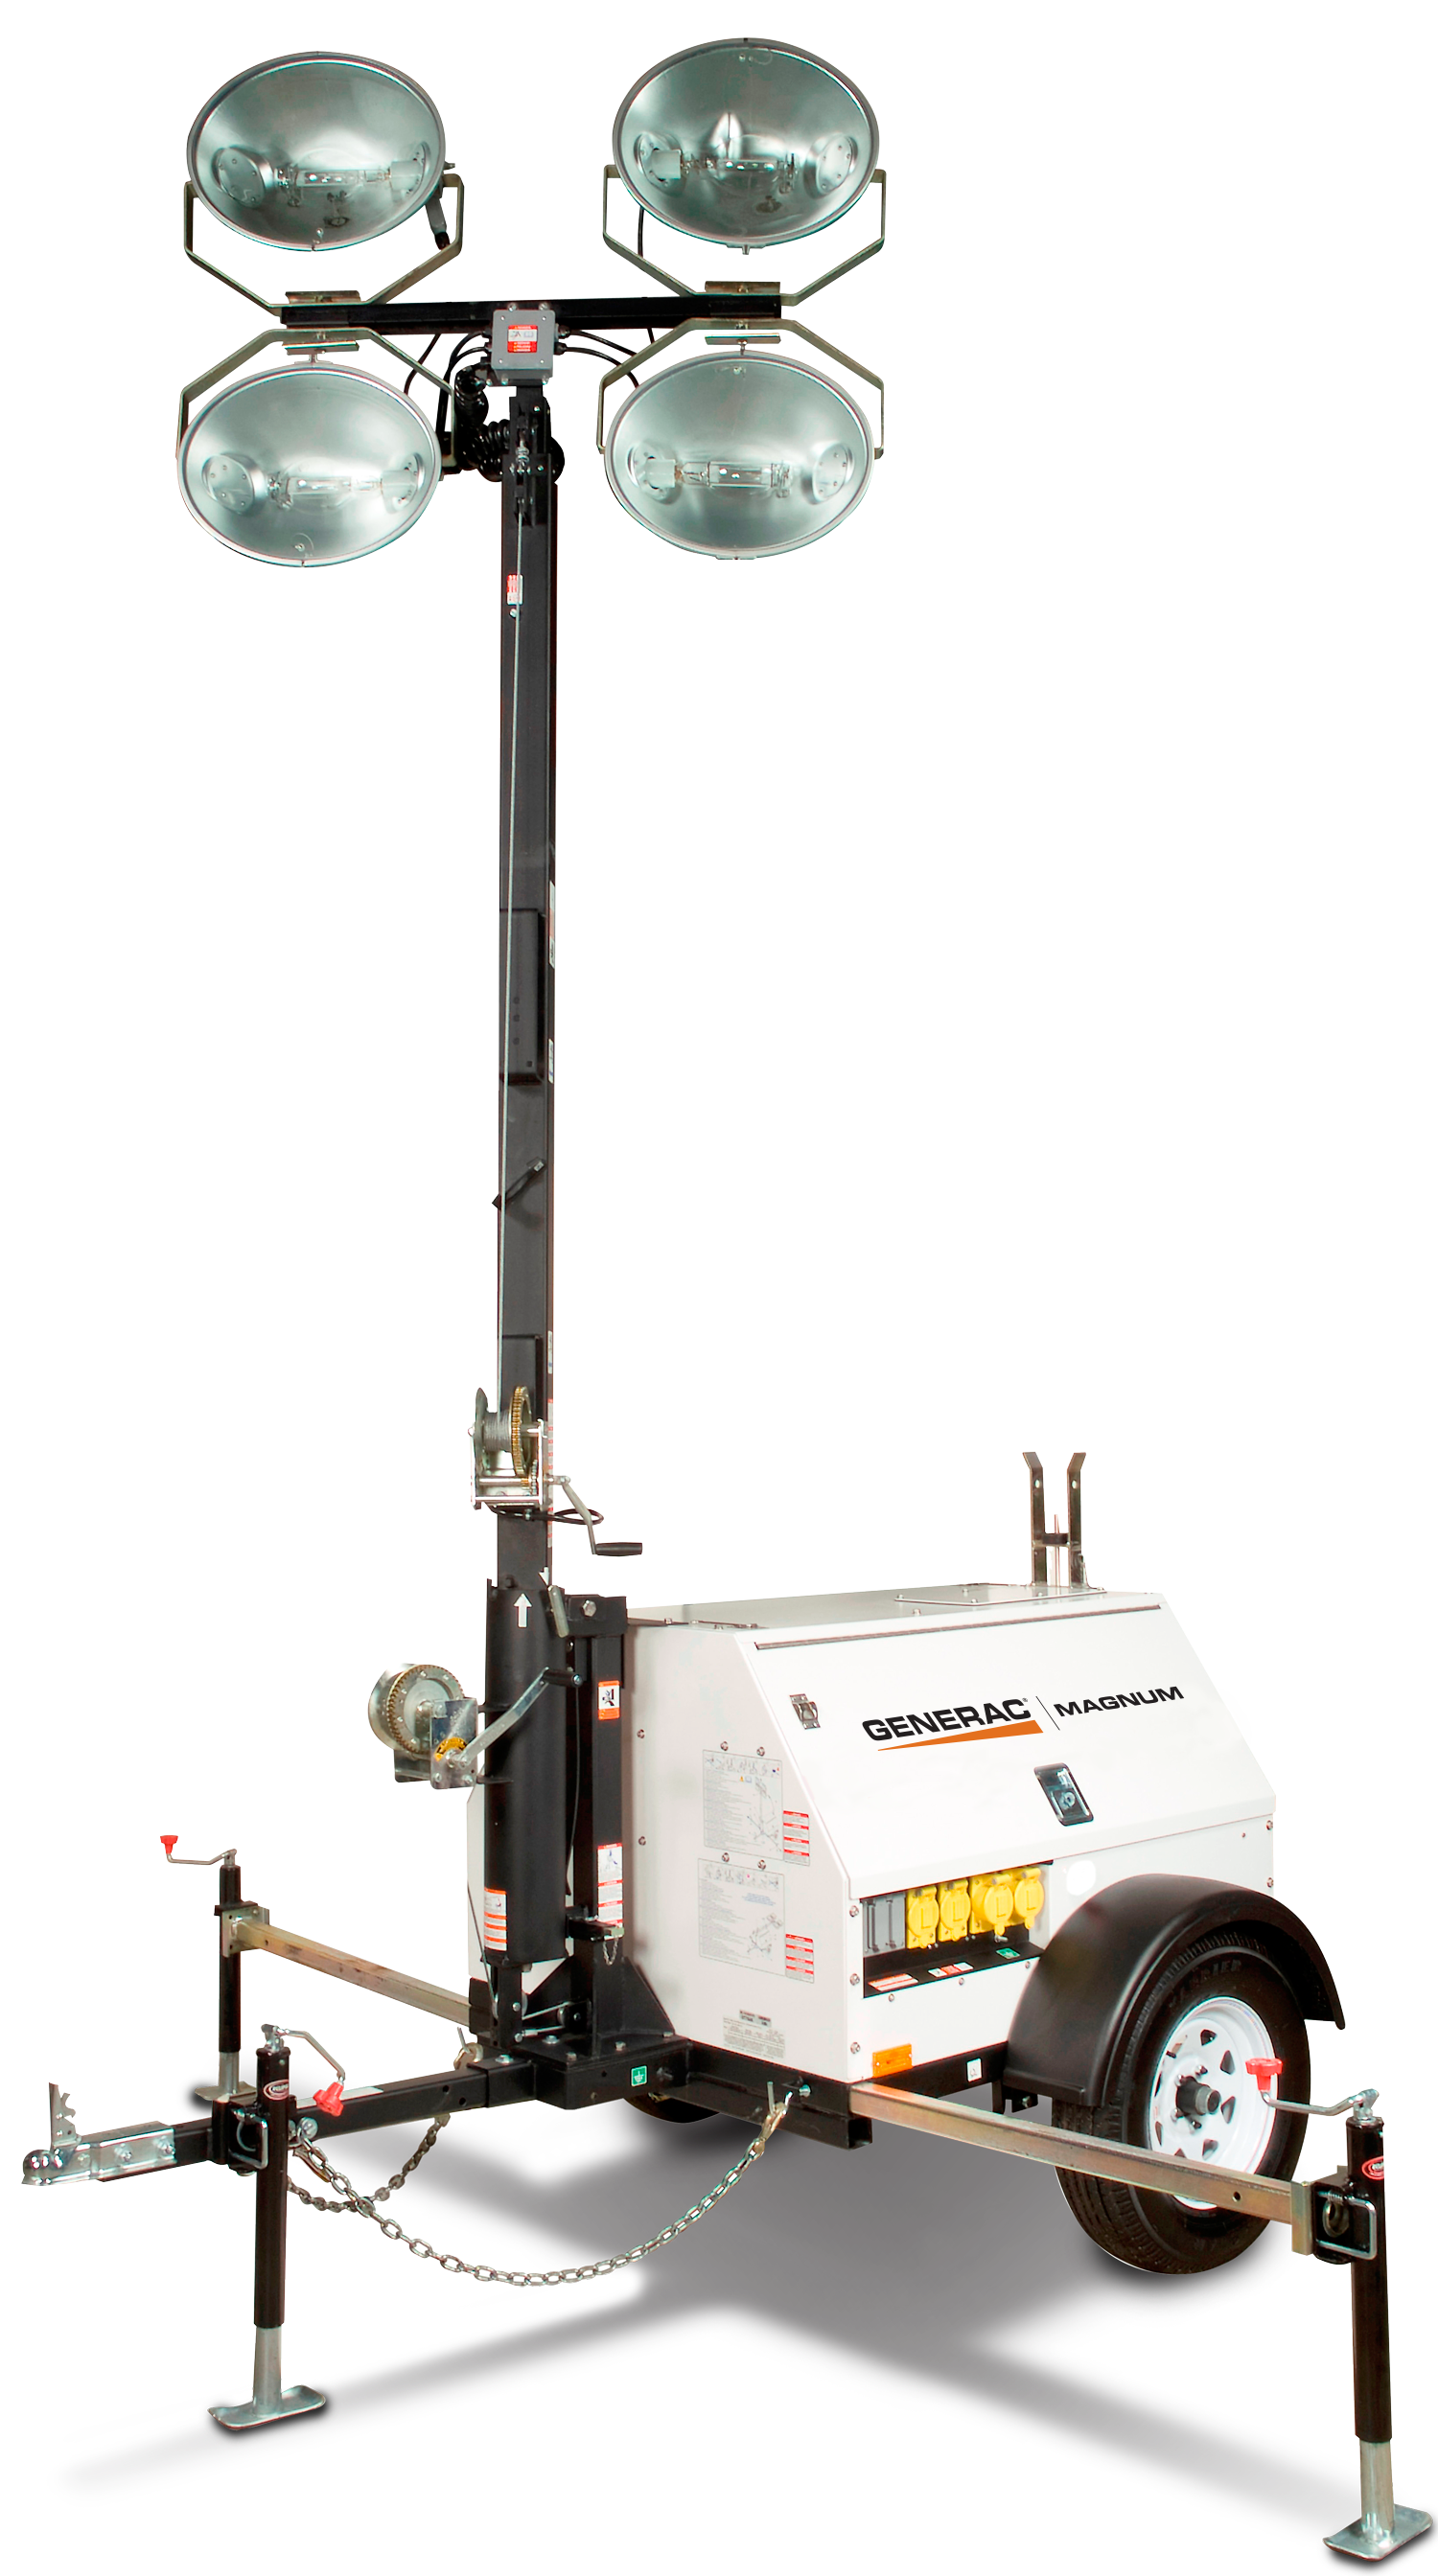 generac mlt4150 mobile metal halide light tower